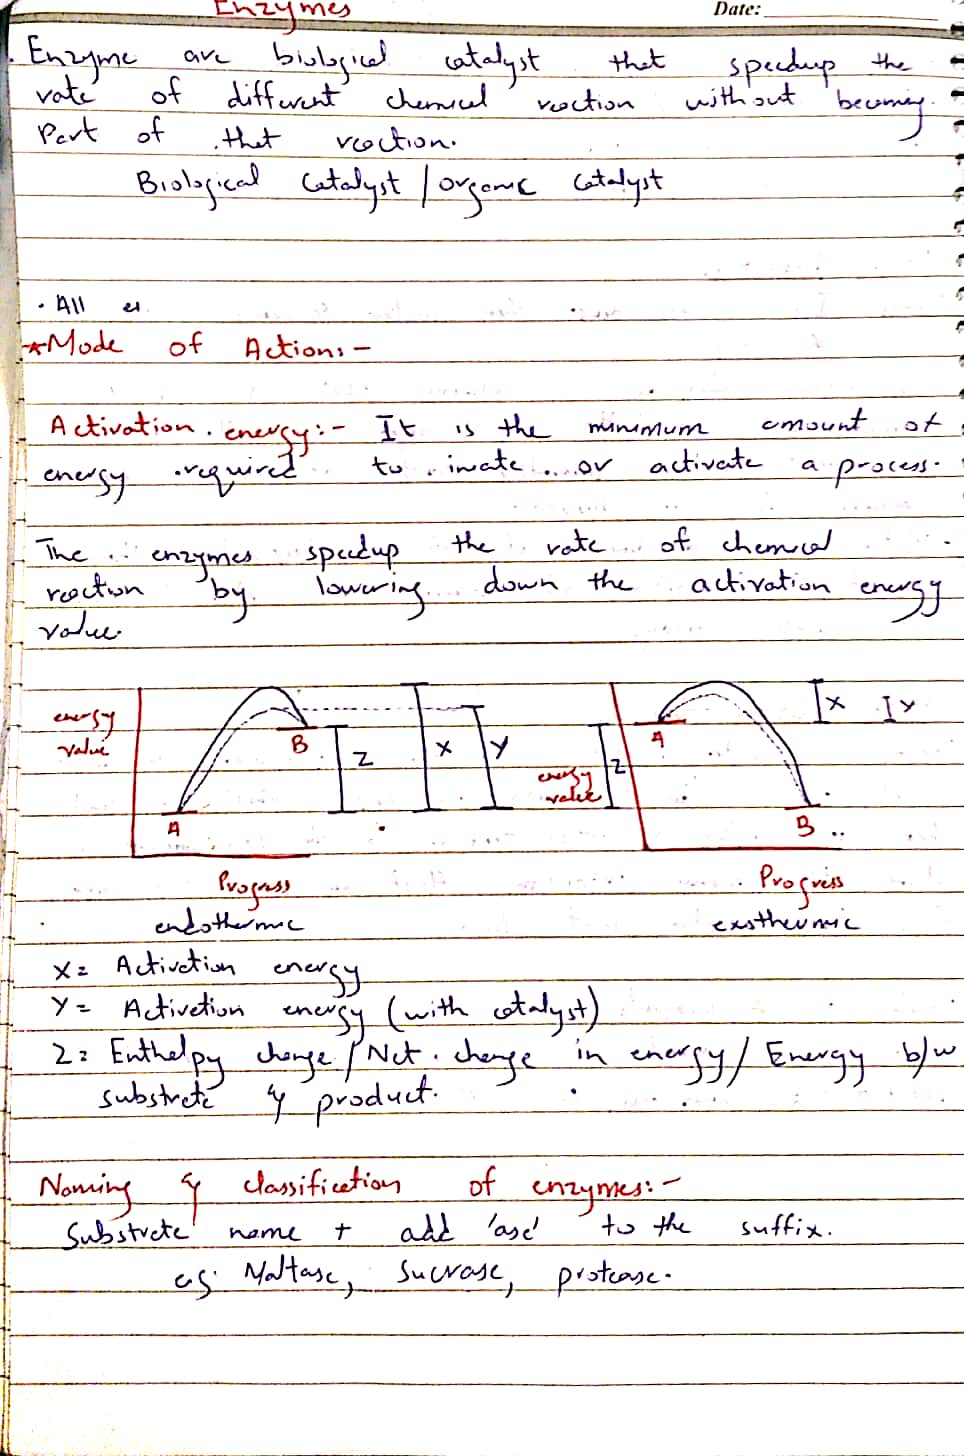 Enzymes._1